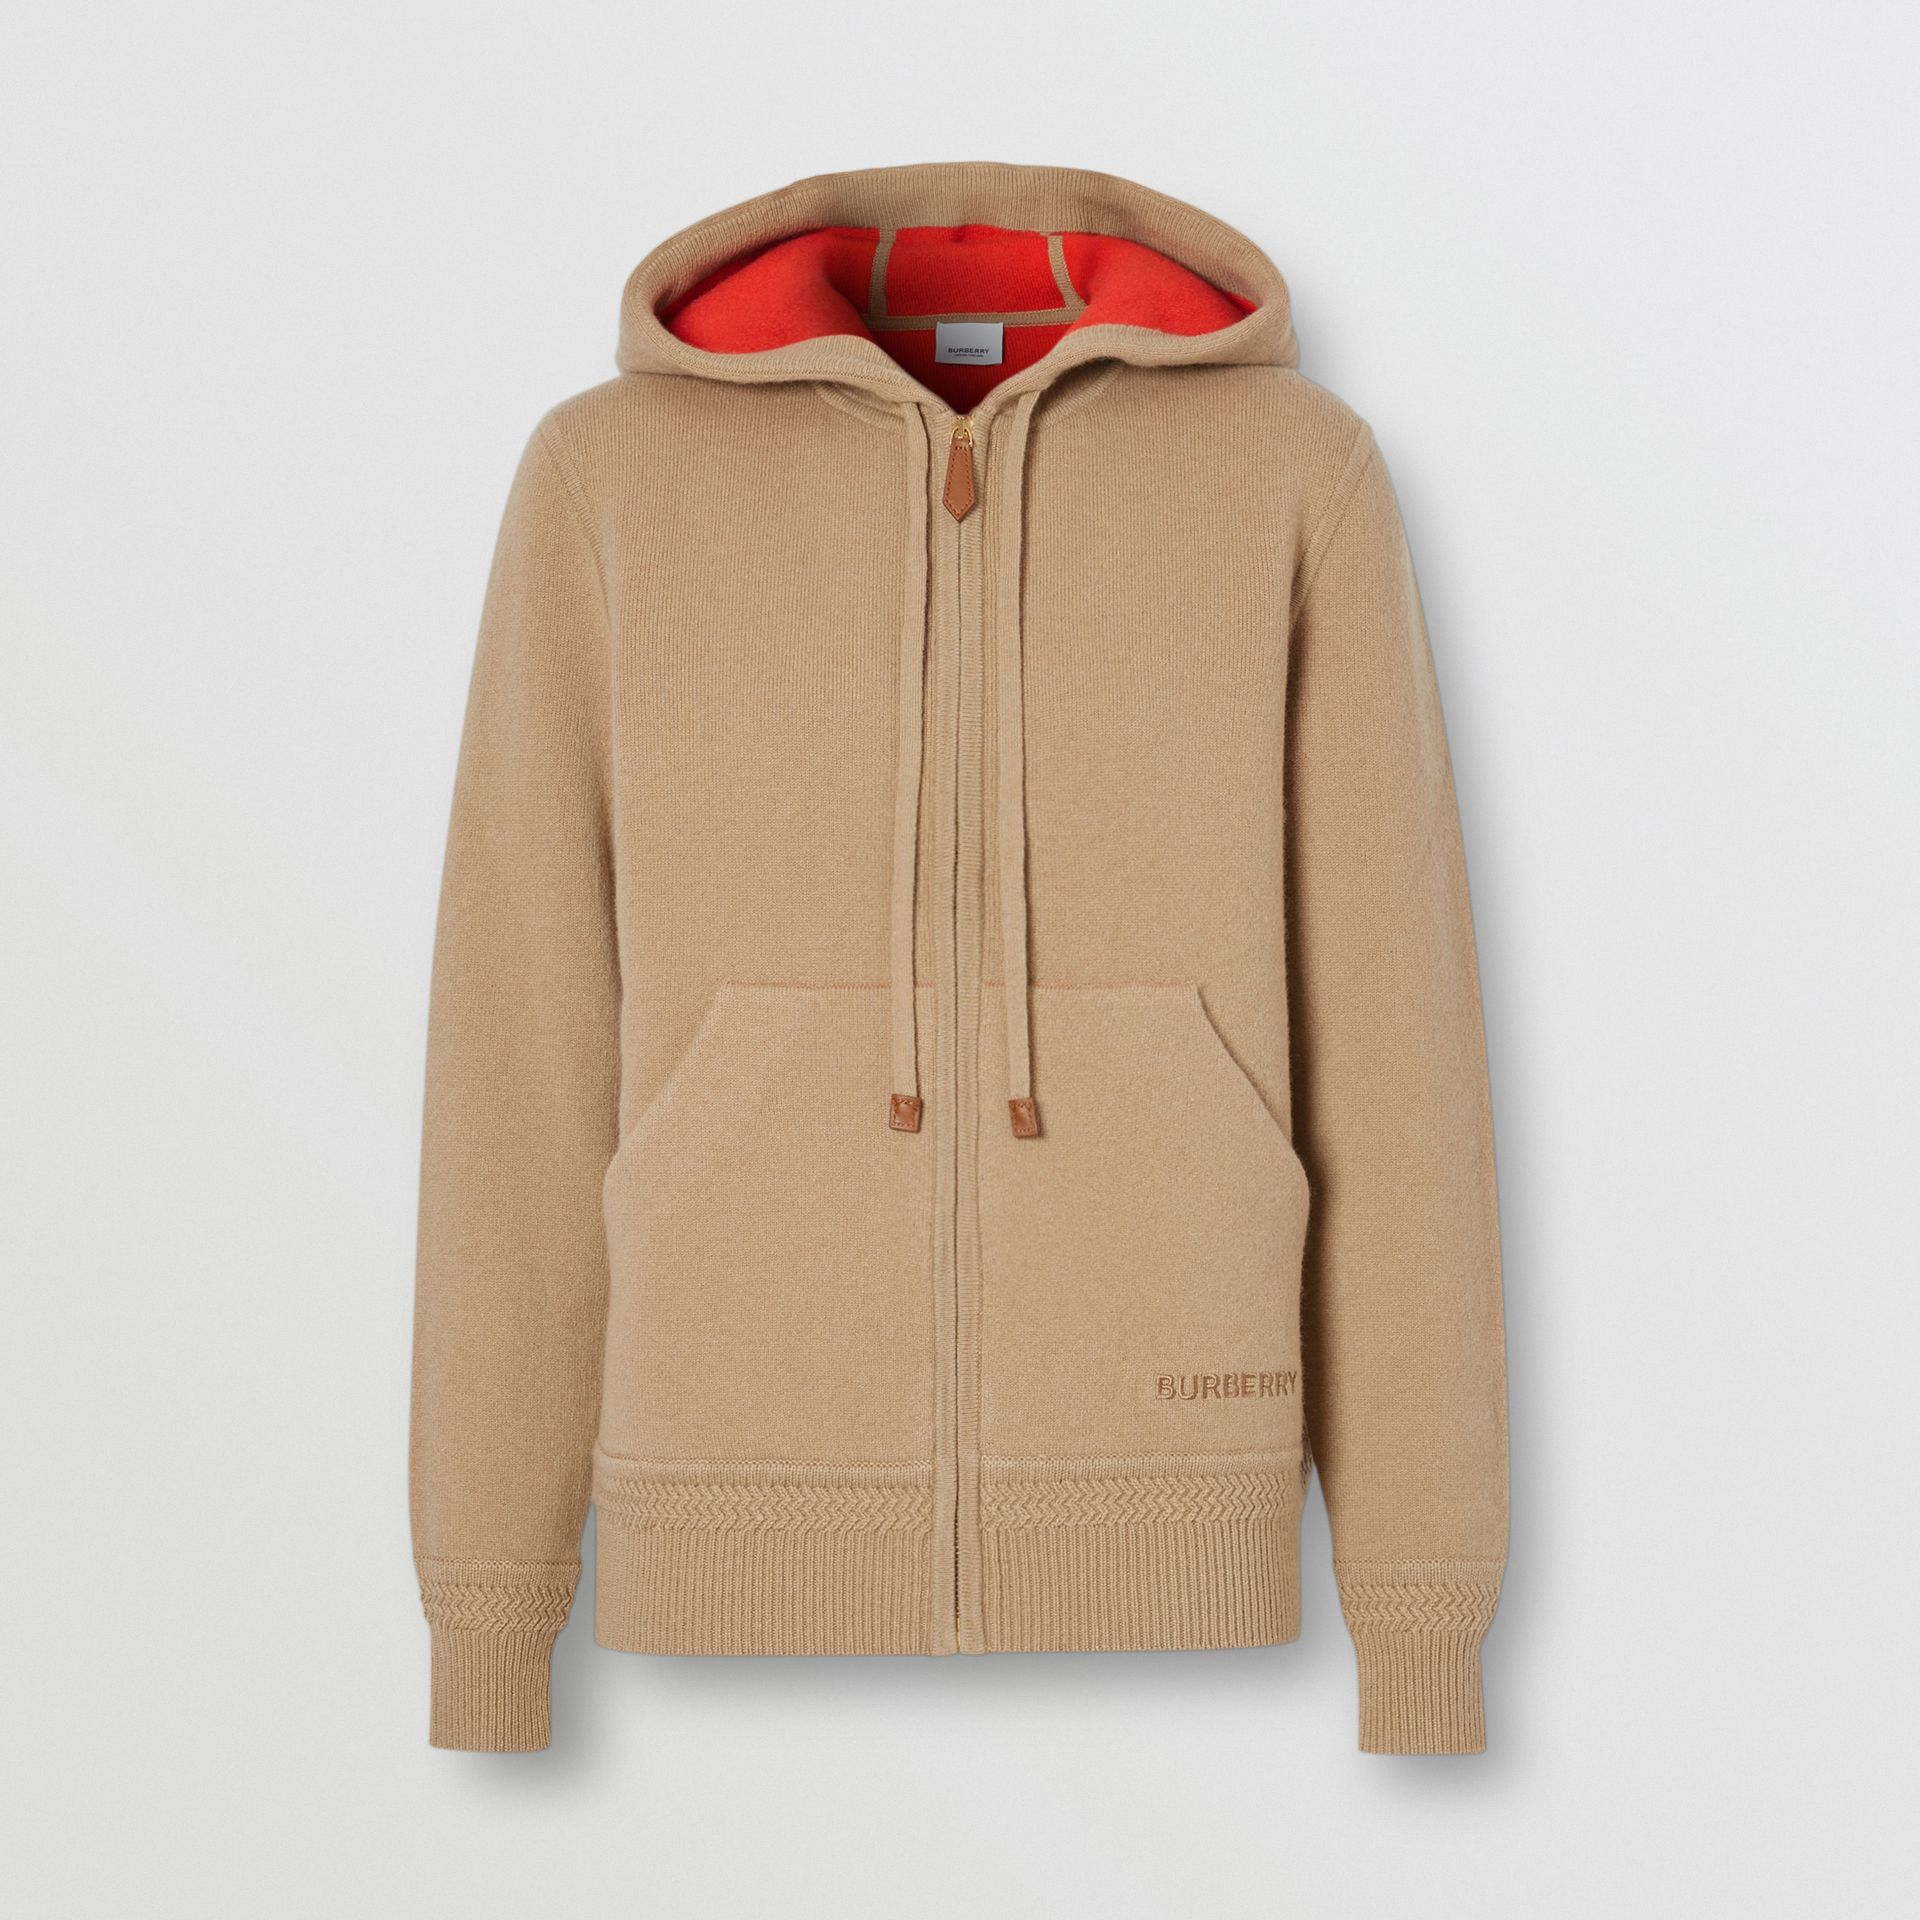 Embroidered Logo Cashmere Hooded Top in Archive Beige - Women | Burberry Hong Kong S.A.R - gallery image 2